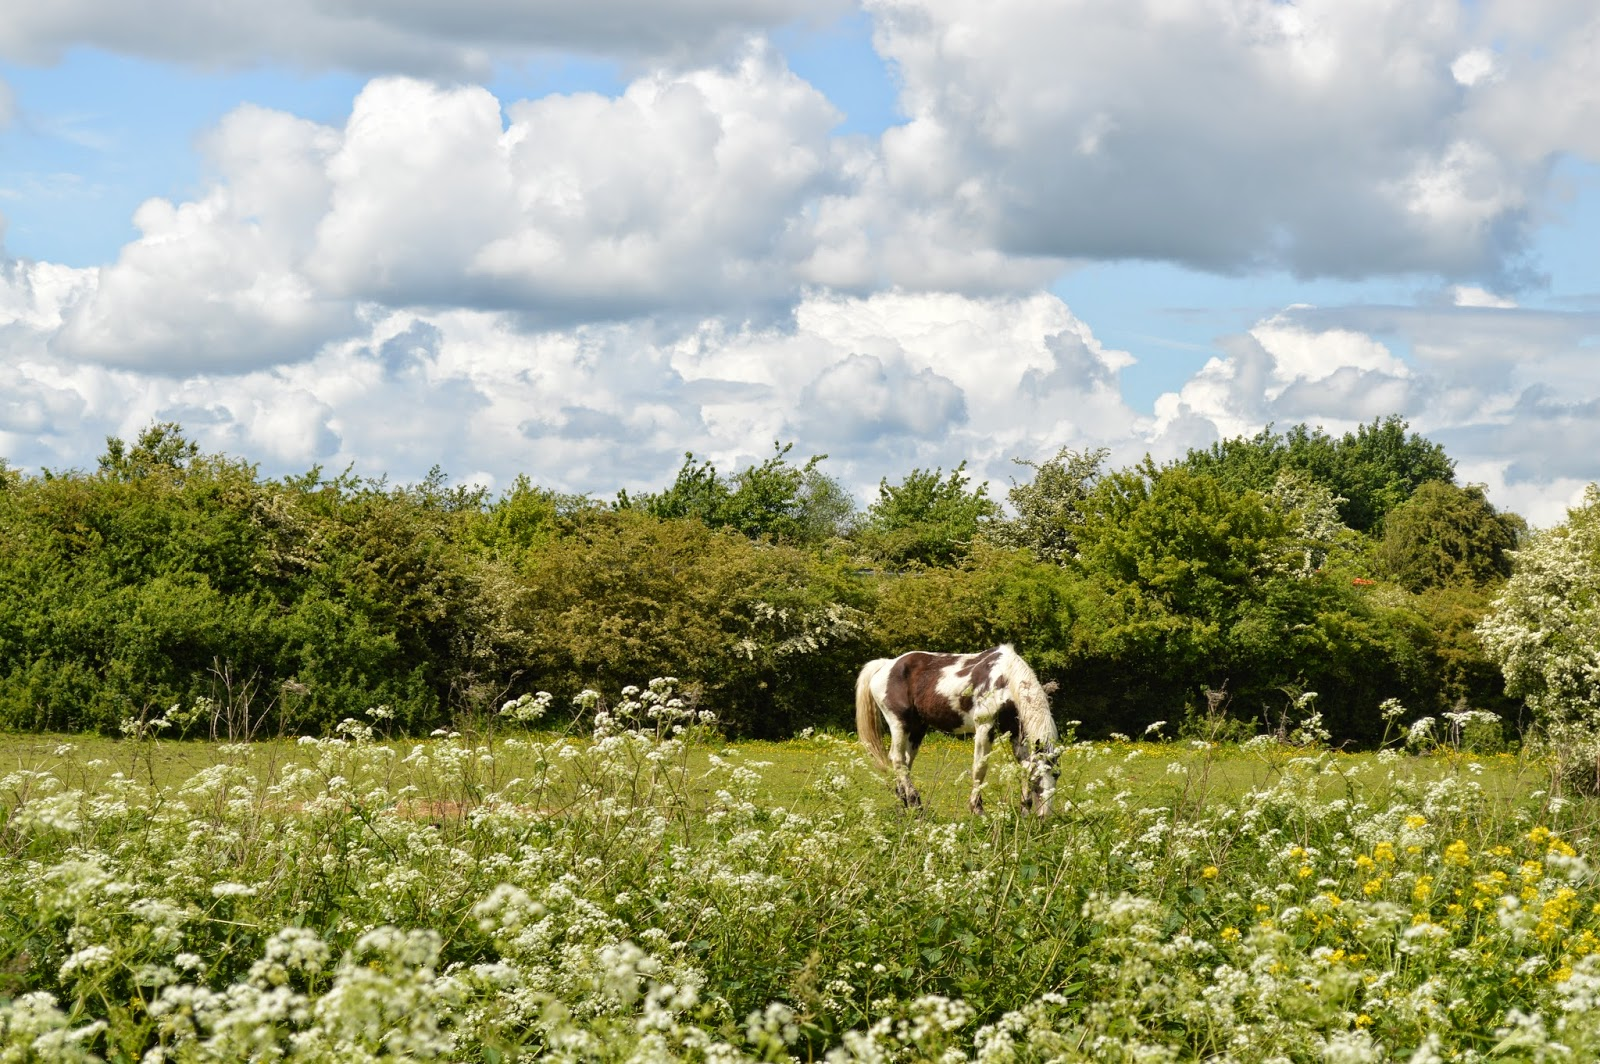 photo, phtography, visit, horse, meadow, sunshine, grass, field, grazing, UK, Essex, countryside, bike ride, carefree, mini-adventure, cycle, outside, route, weir, water, glisten, reflection, happy, happiness